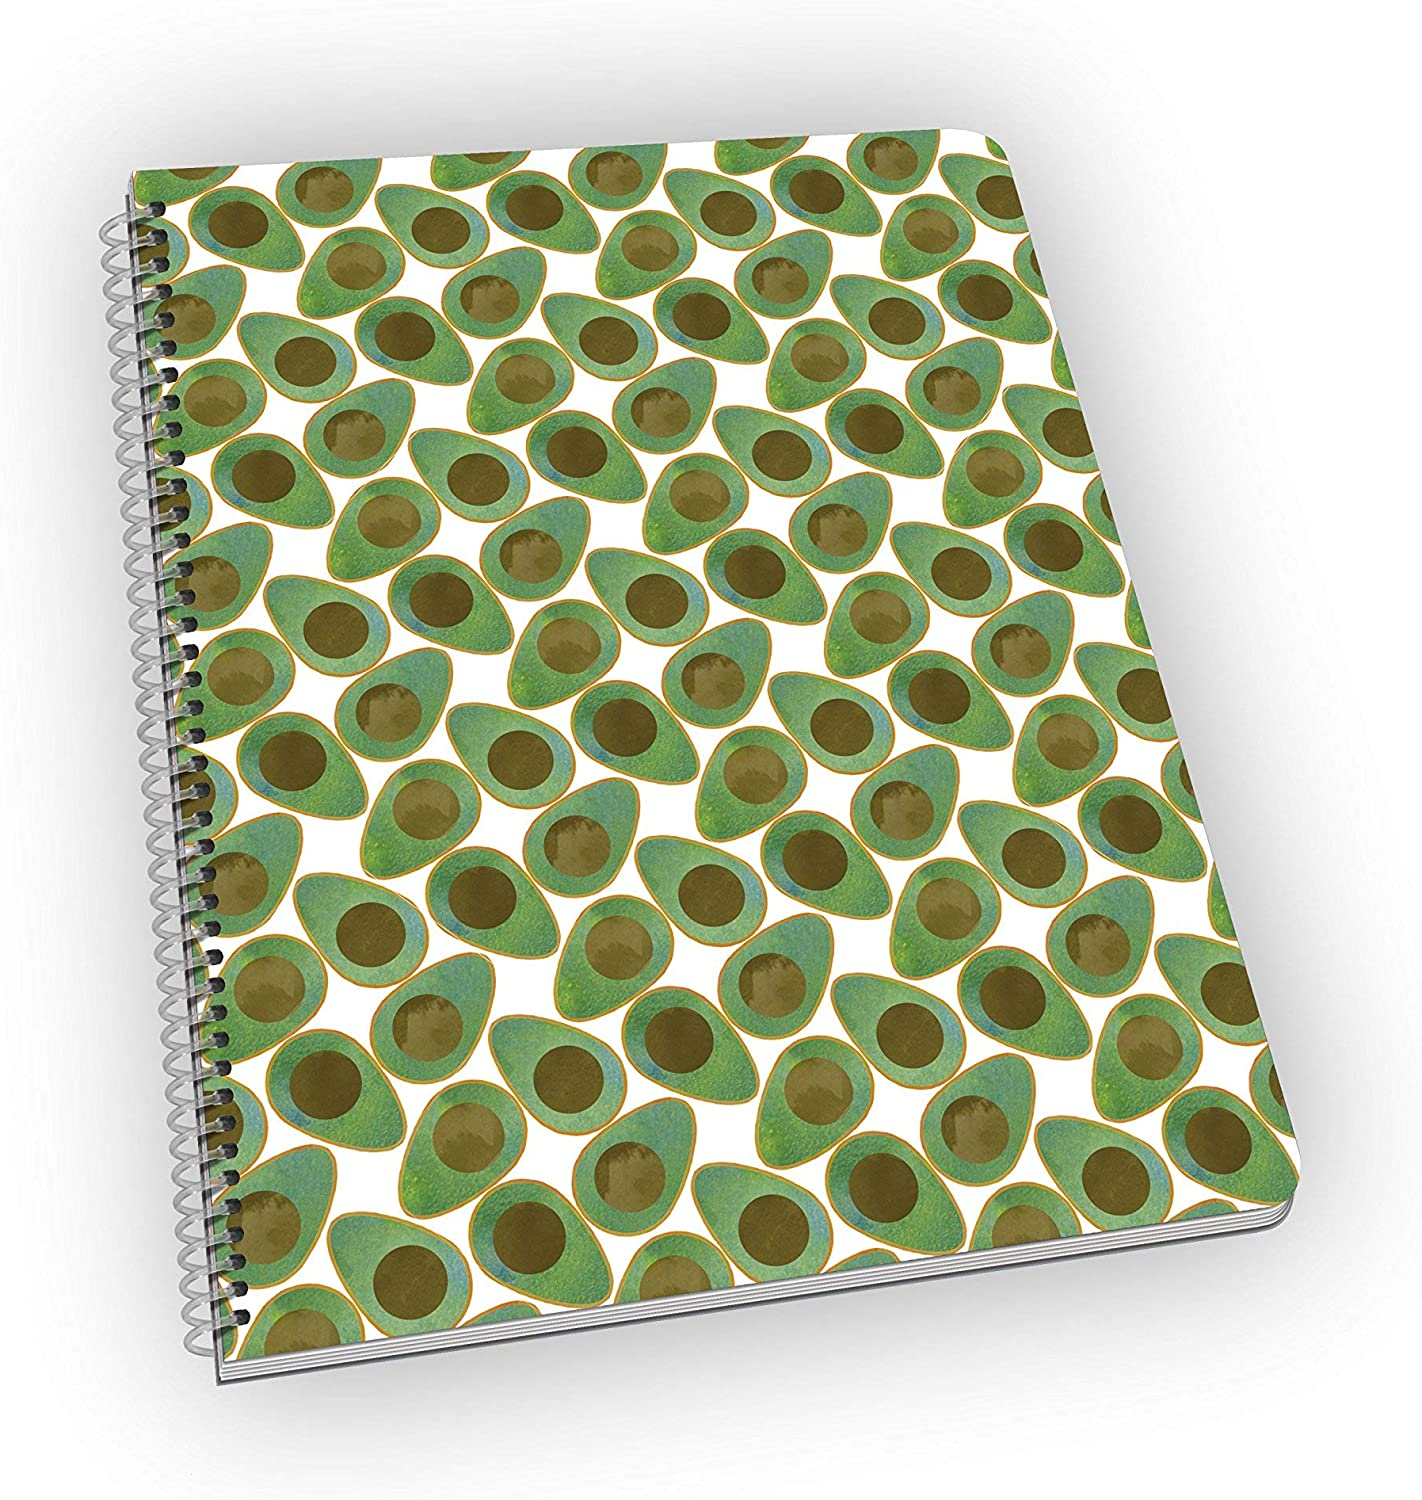 Avocados notebook, lined pages, spiral bound. Great gift!